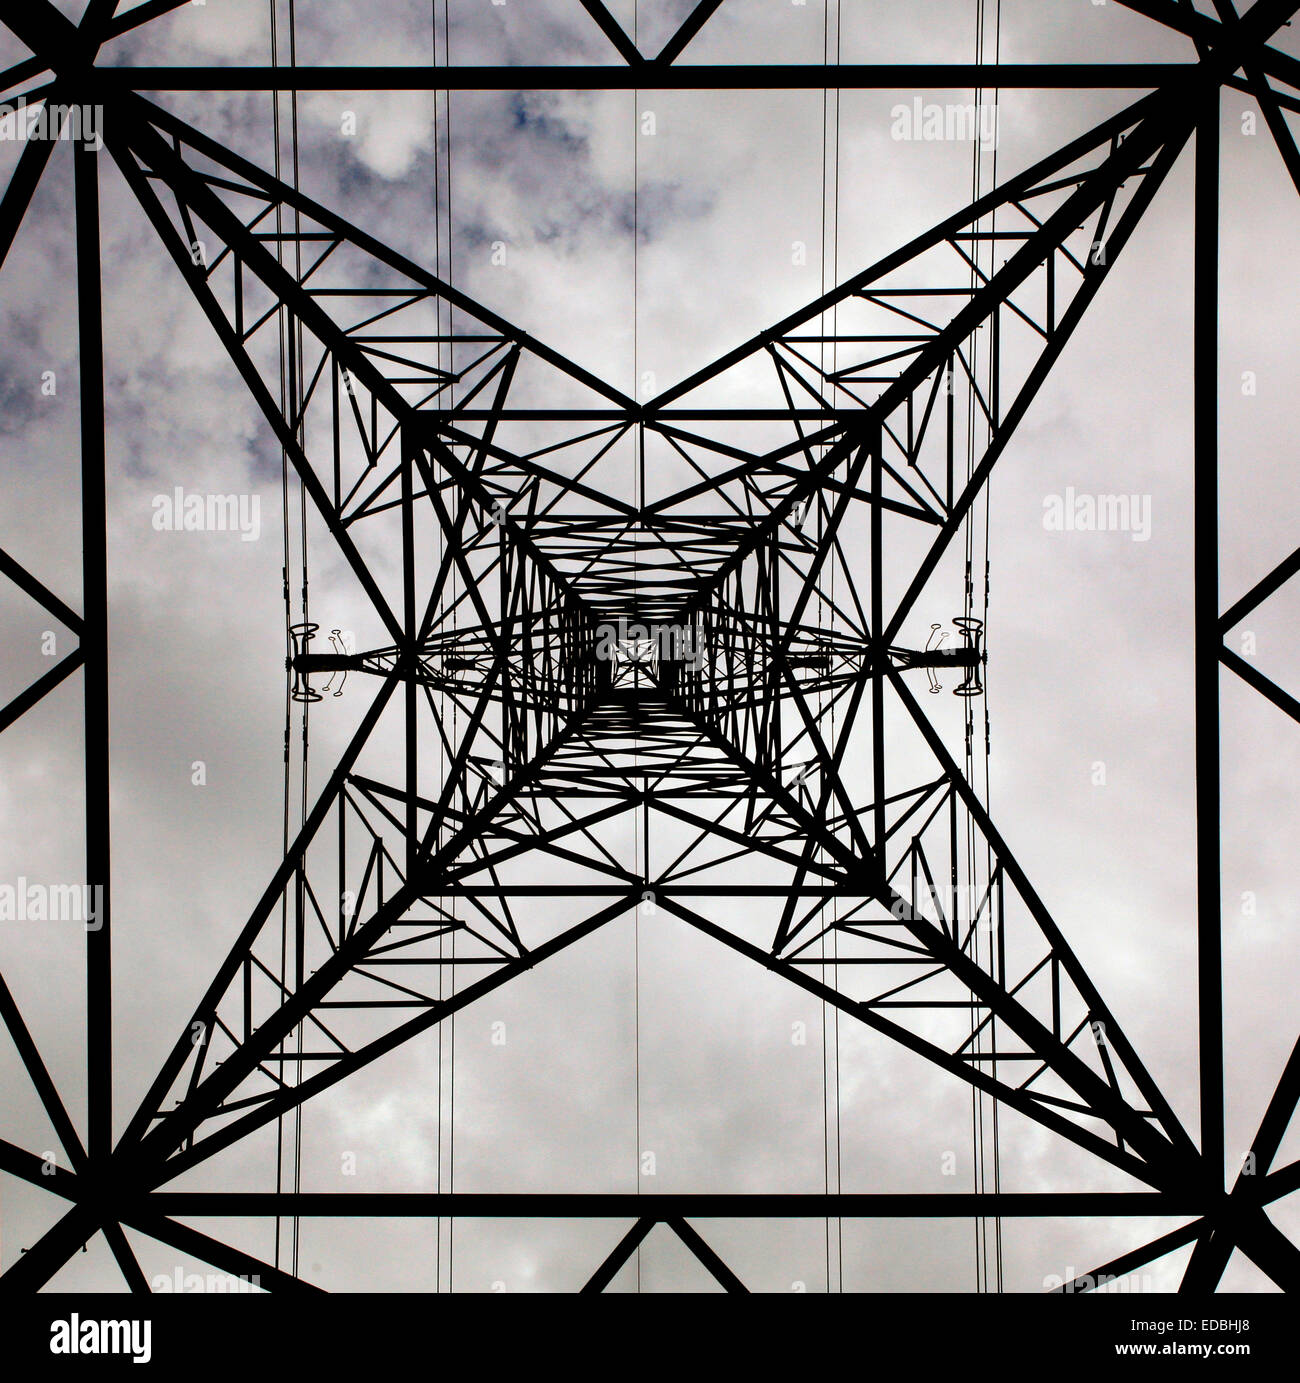 Picture shows an electricity pylon photographed from beneath. - Stock Image